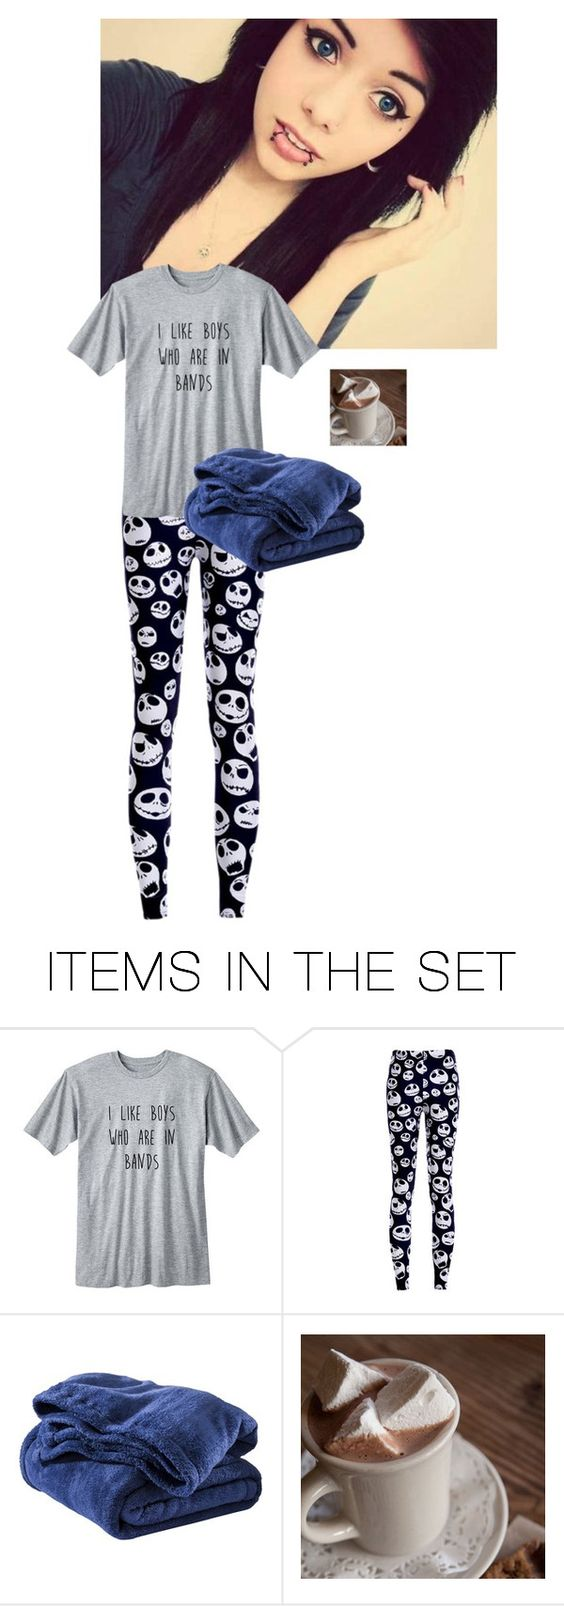 """*sitting at the window and watches the storm, sipping the hot chocolate* -Rebel"" by rebel-sixx ❤ liked on Polyvore featuring art"